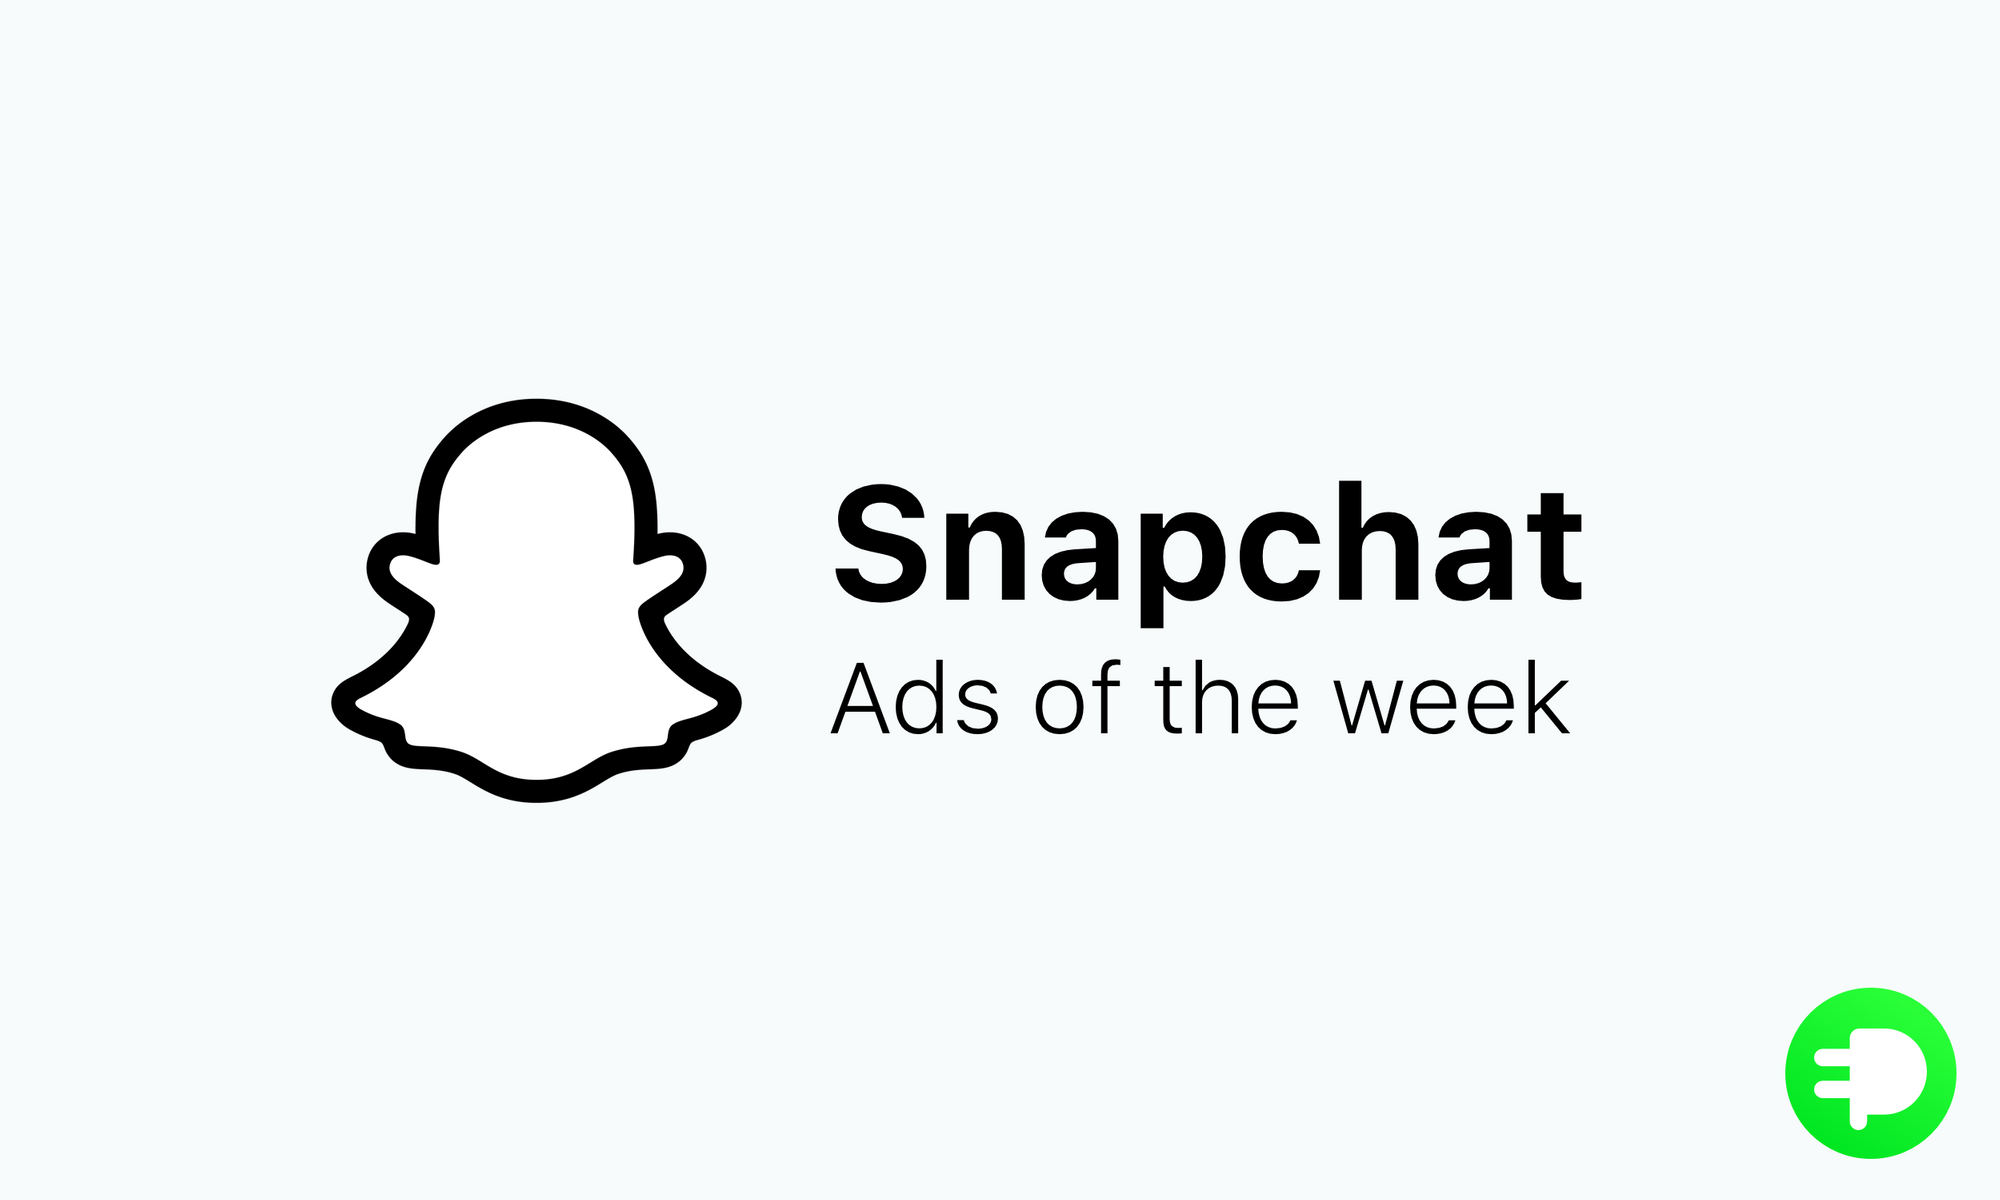 Snapchat Ads of the week